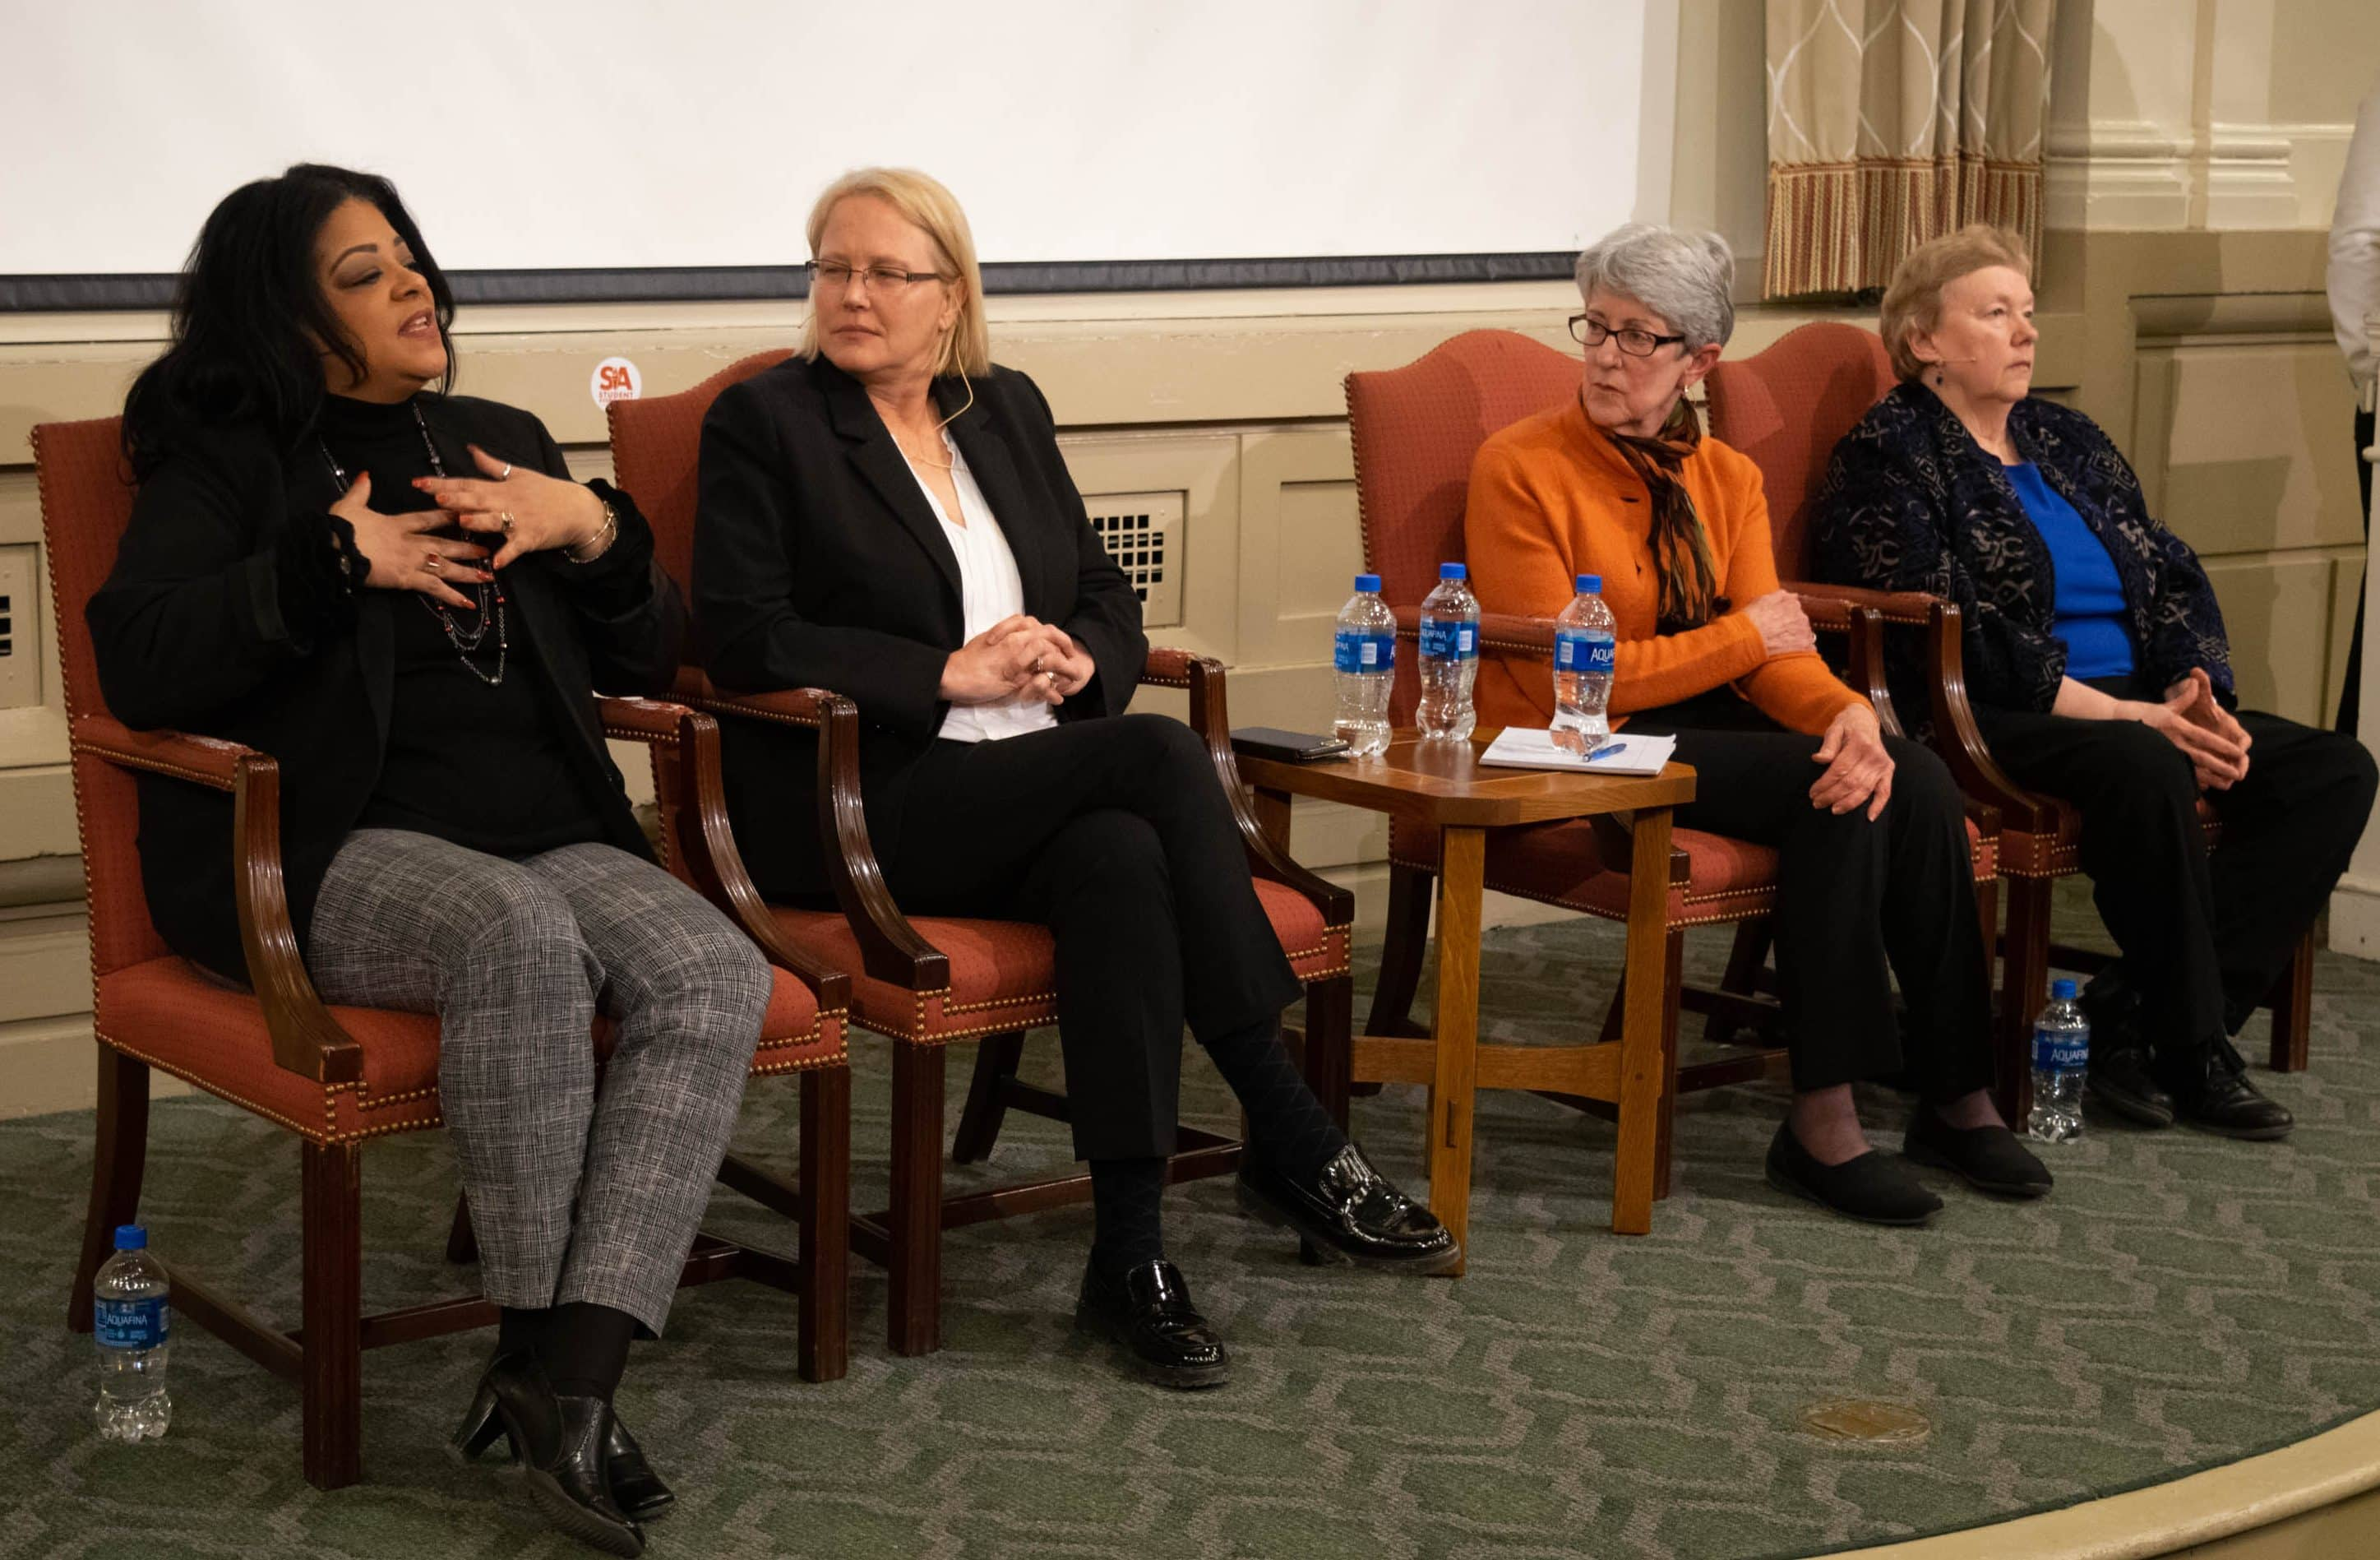 Women in Politics Panel - March 1, 2019 - Maxwell School